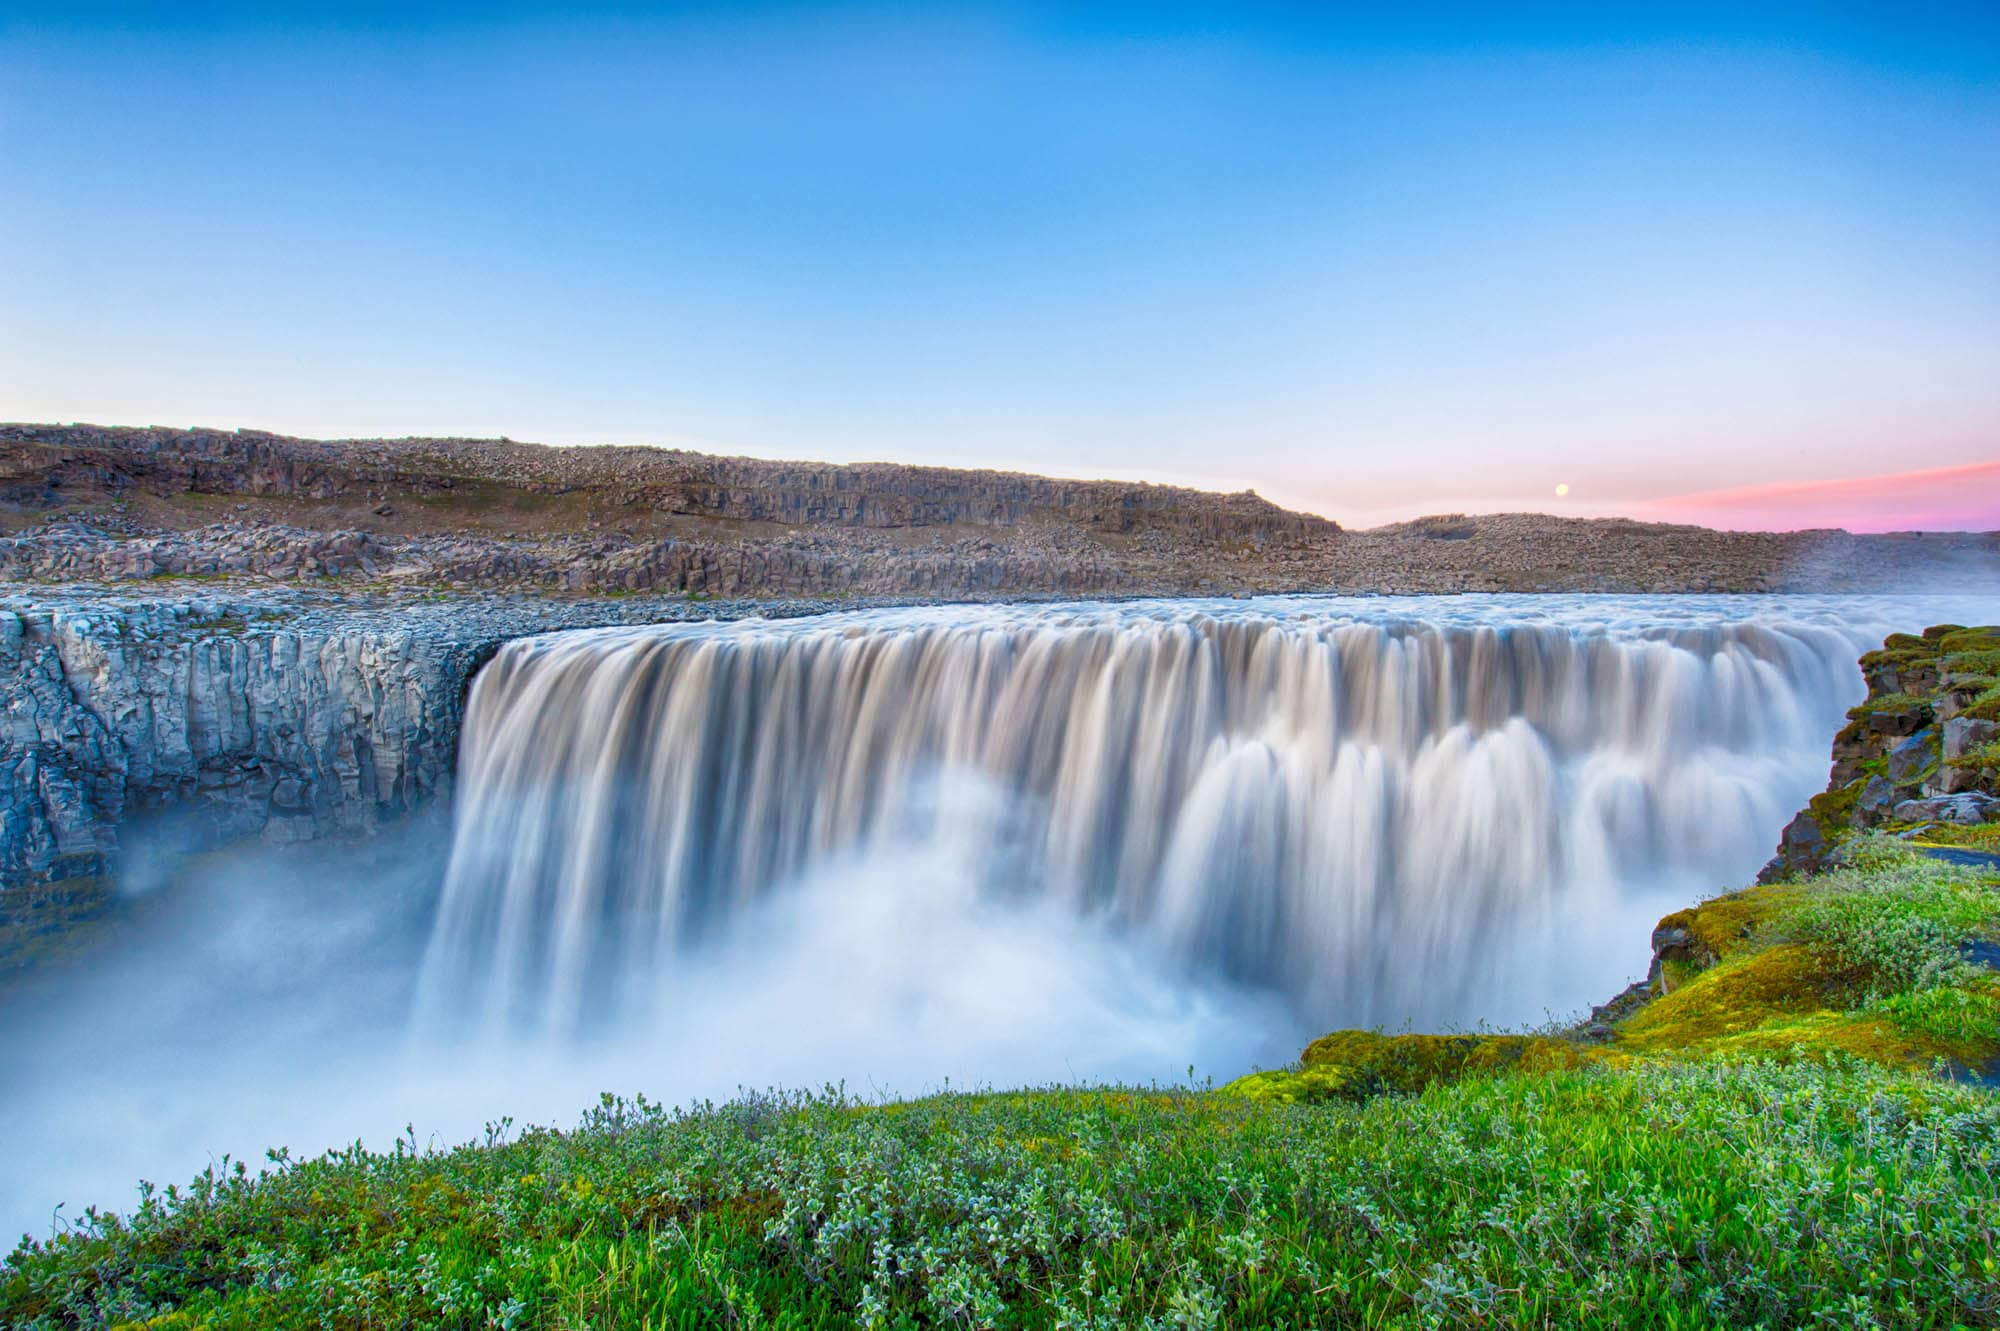 Godafoss waterfall in North Iceland - Iceland self-drive tour package